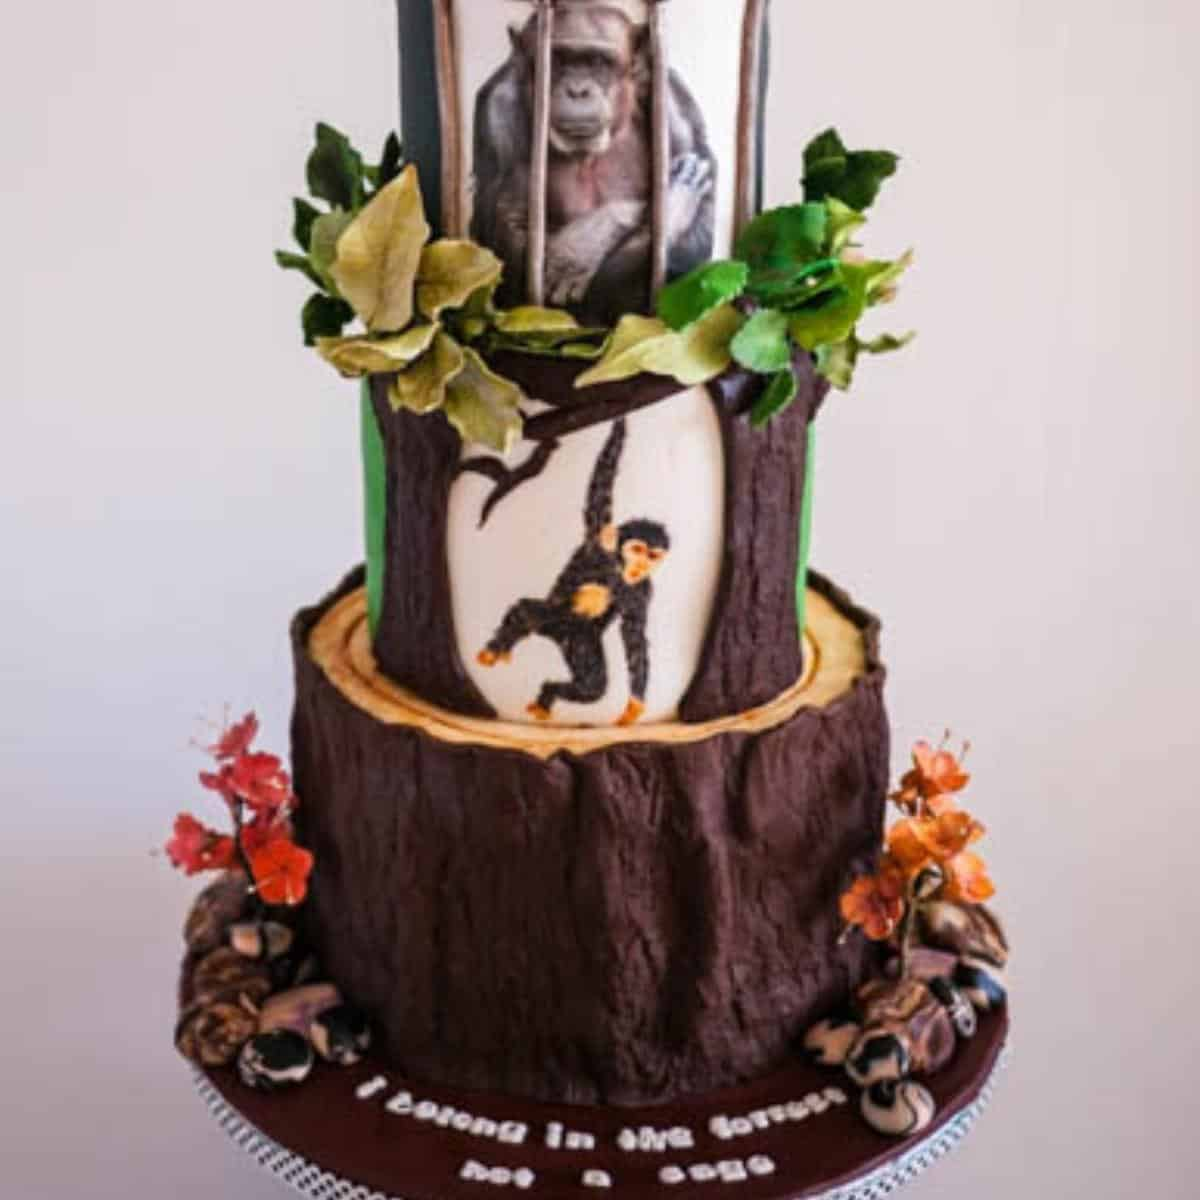 A tiered cake covered in modeling chocolate.